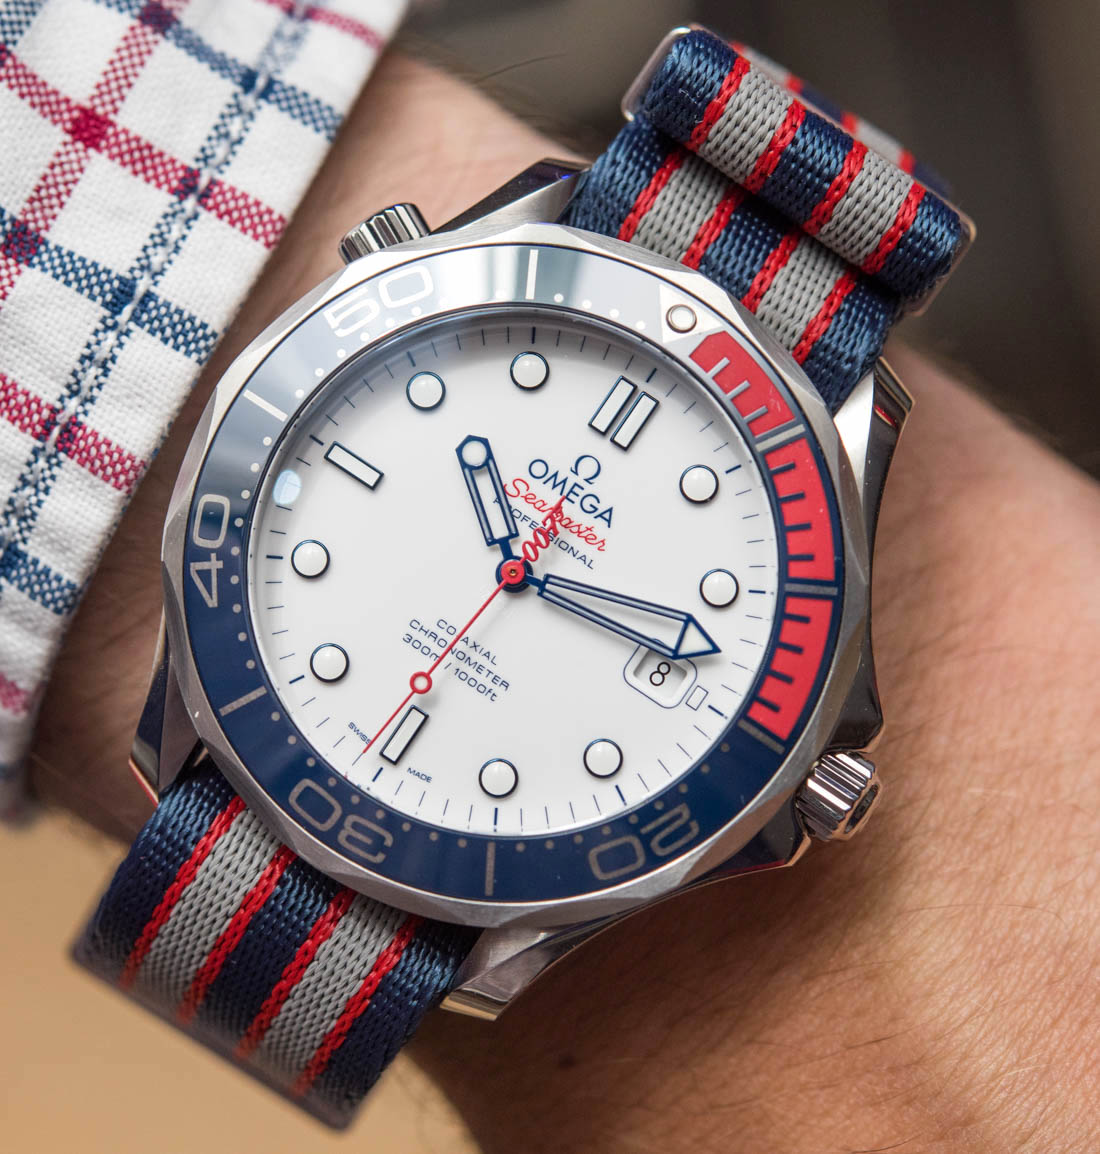 Omega Seamaster Diver 300M 'Commander's Watch' Limited Edition Inspired By James Bond 007 Hands-On Hands-On